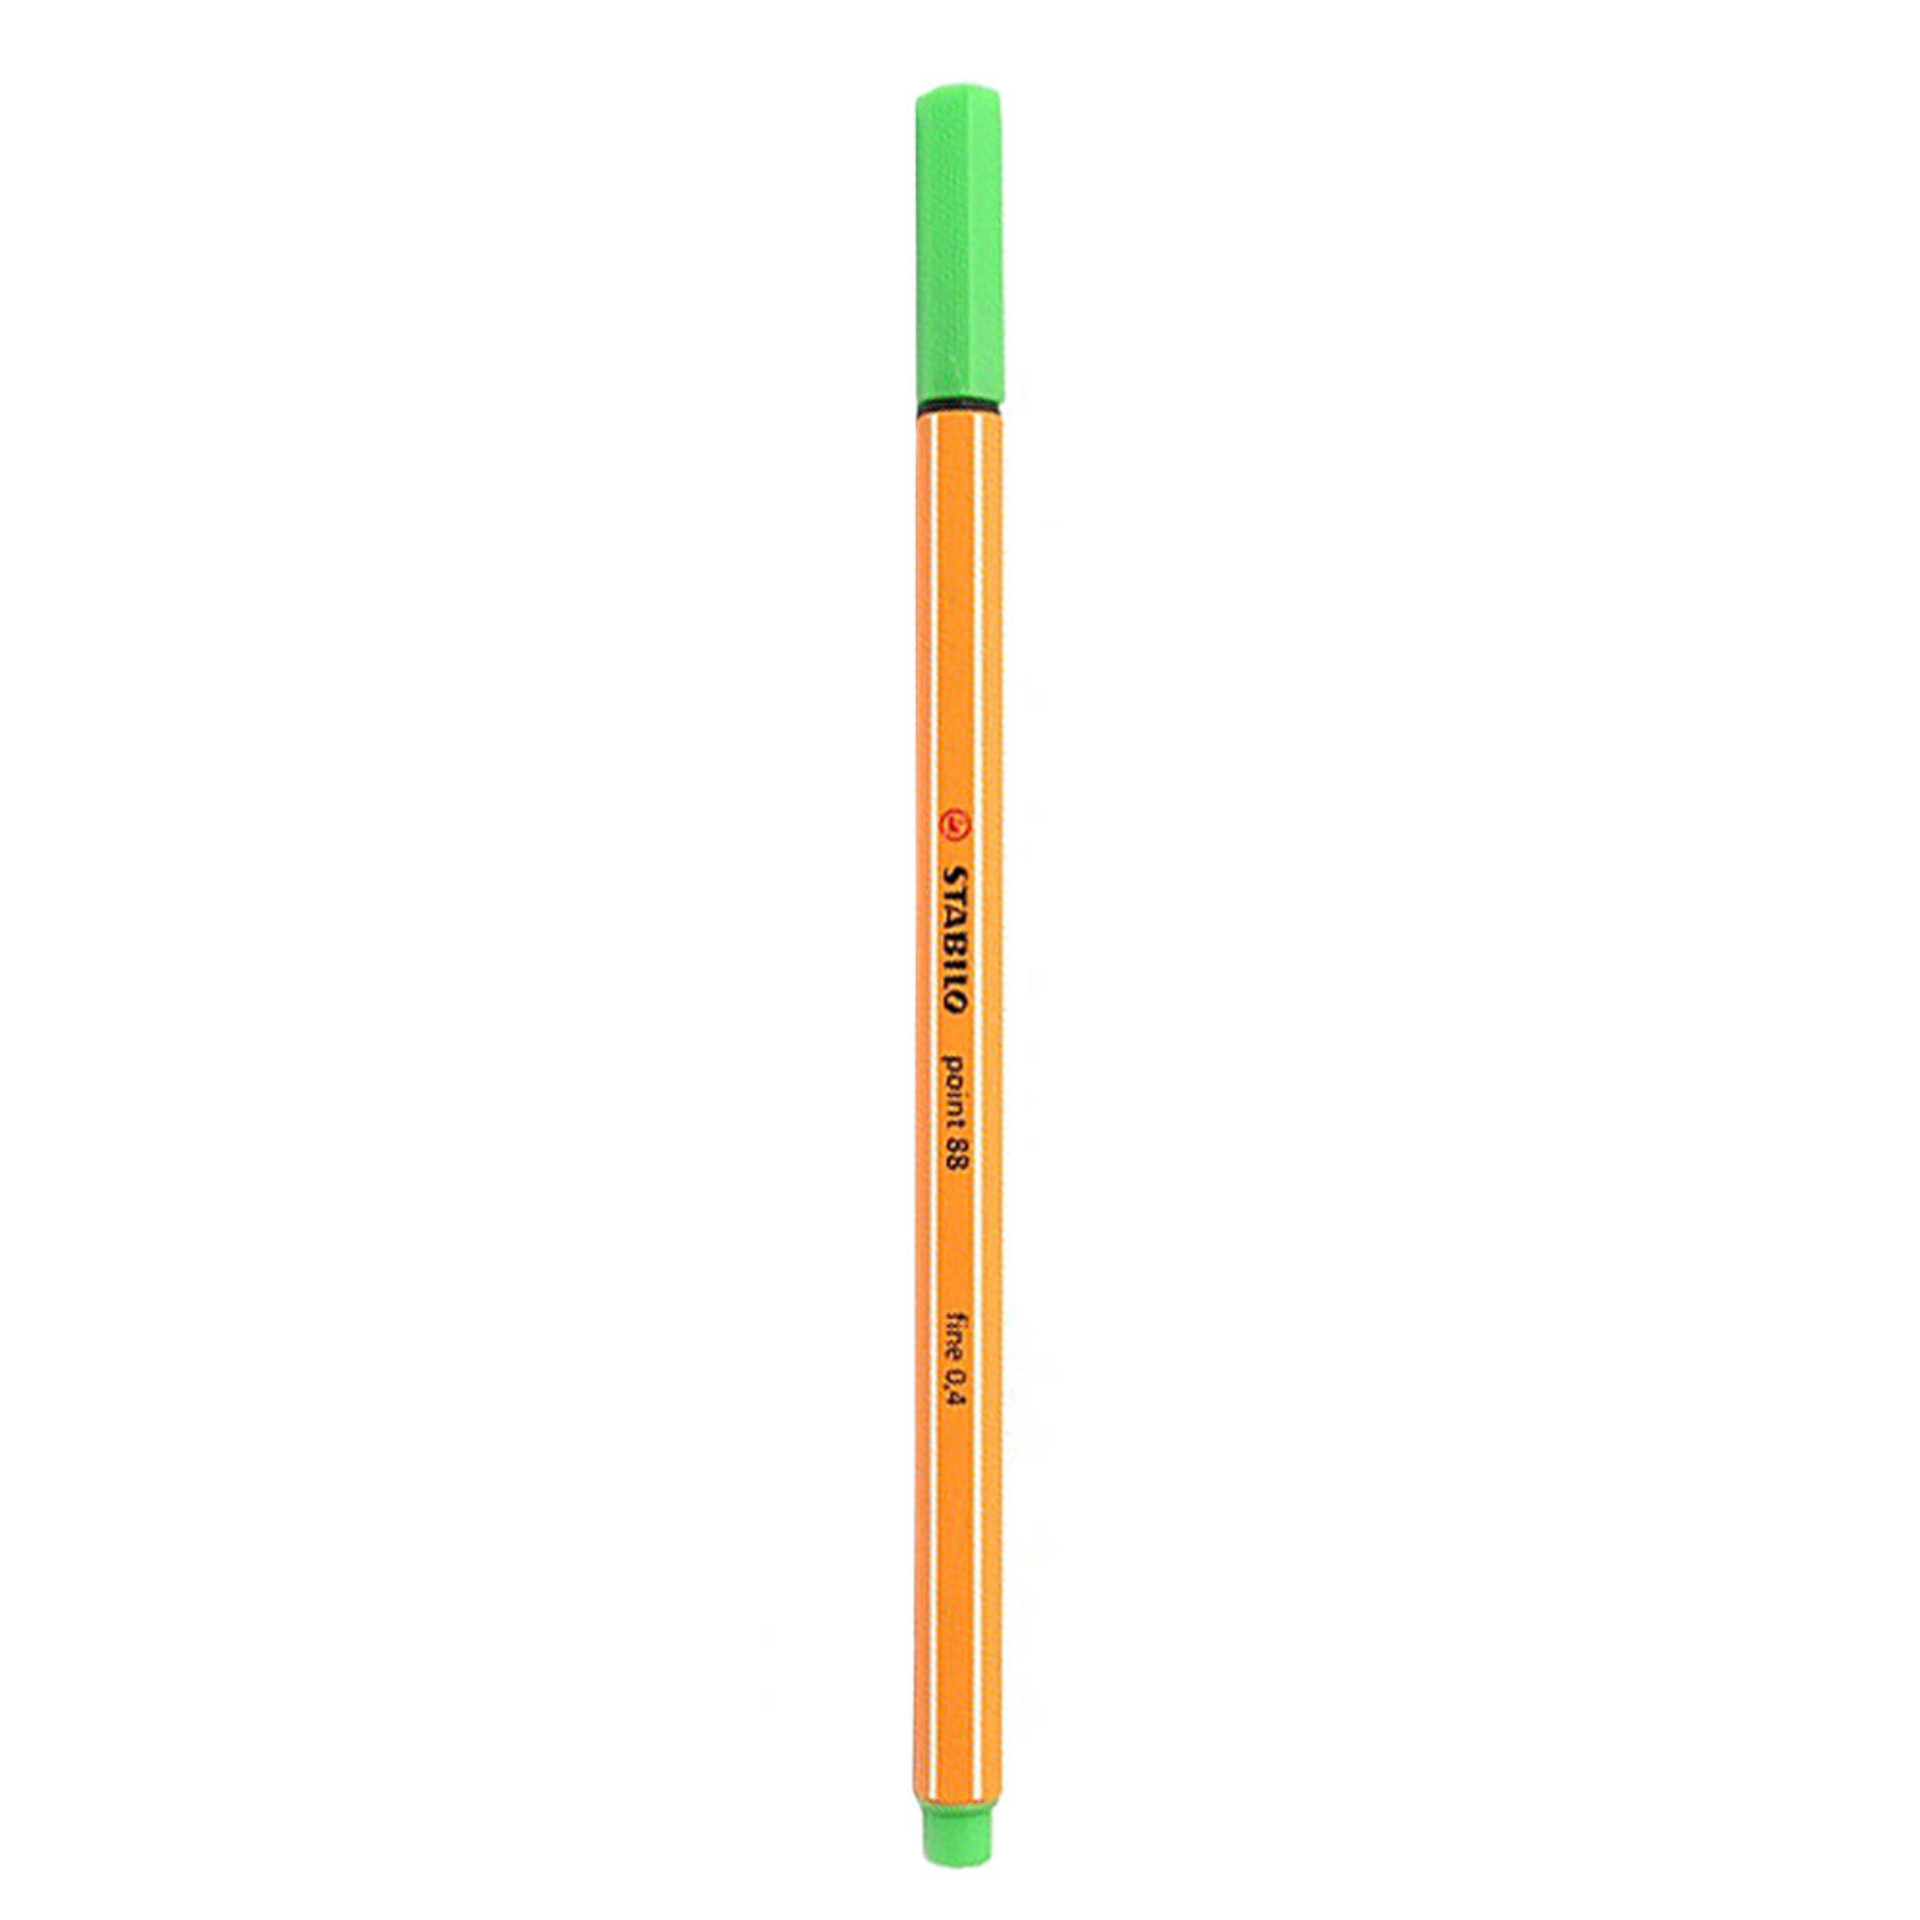 Stabilo Point 88 .4mm Fineliner Pen – Leaf Green